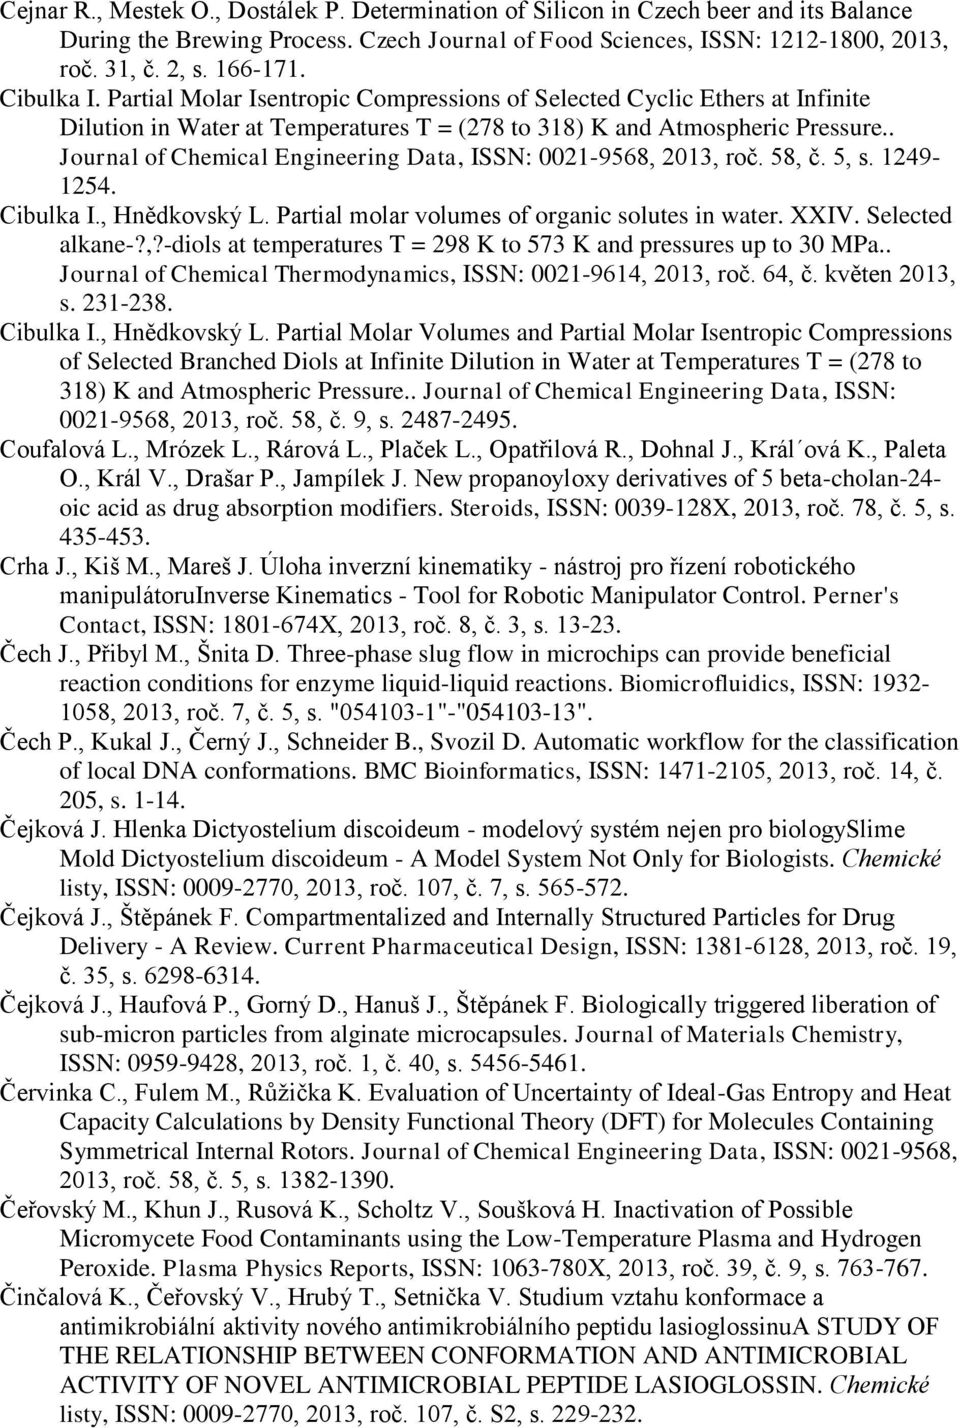 . Journal of Chemical Engineering Data, ISSN: 0021-9568, 2013, roč. 58, č. 5, s. 1249-1254. Cibulka I., Hnědkovský L. Partial molar volumes of organic solutes in water. XXIV. Selected alkane-?,?-diols at temperatures T = 298 K to 573 K and pressures up to 30 MPa.